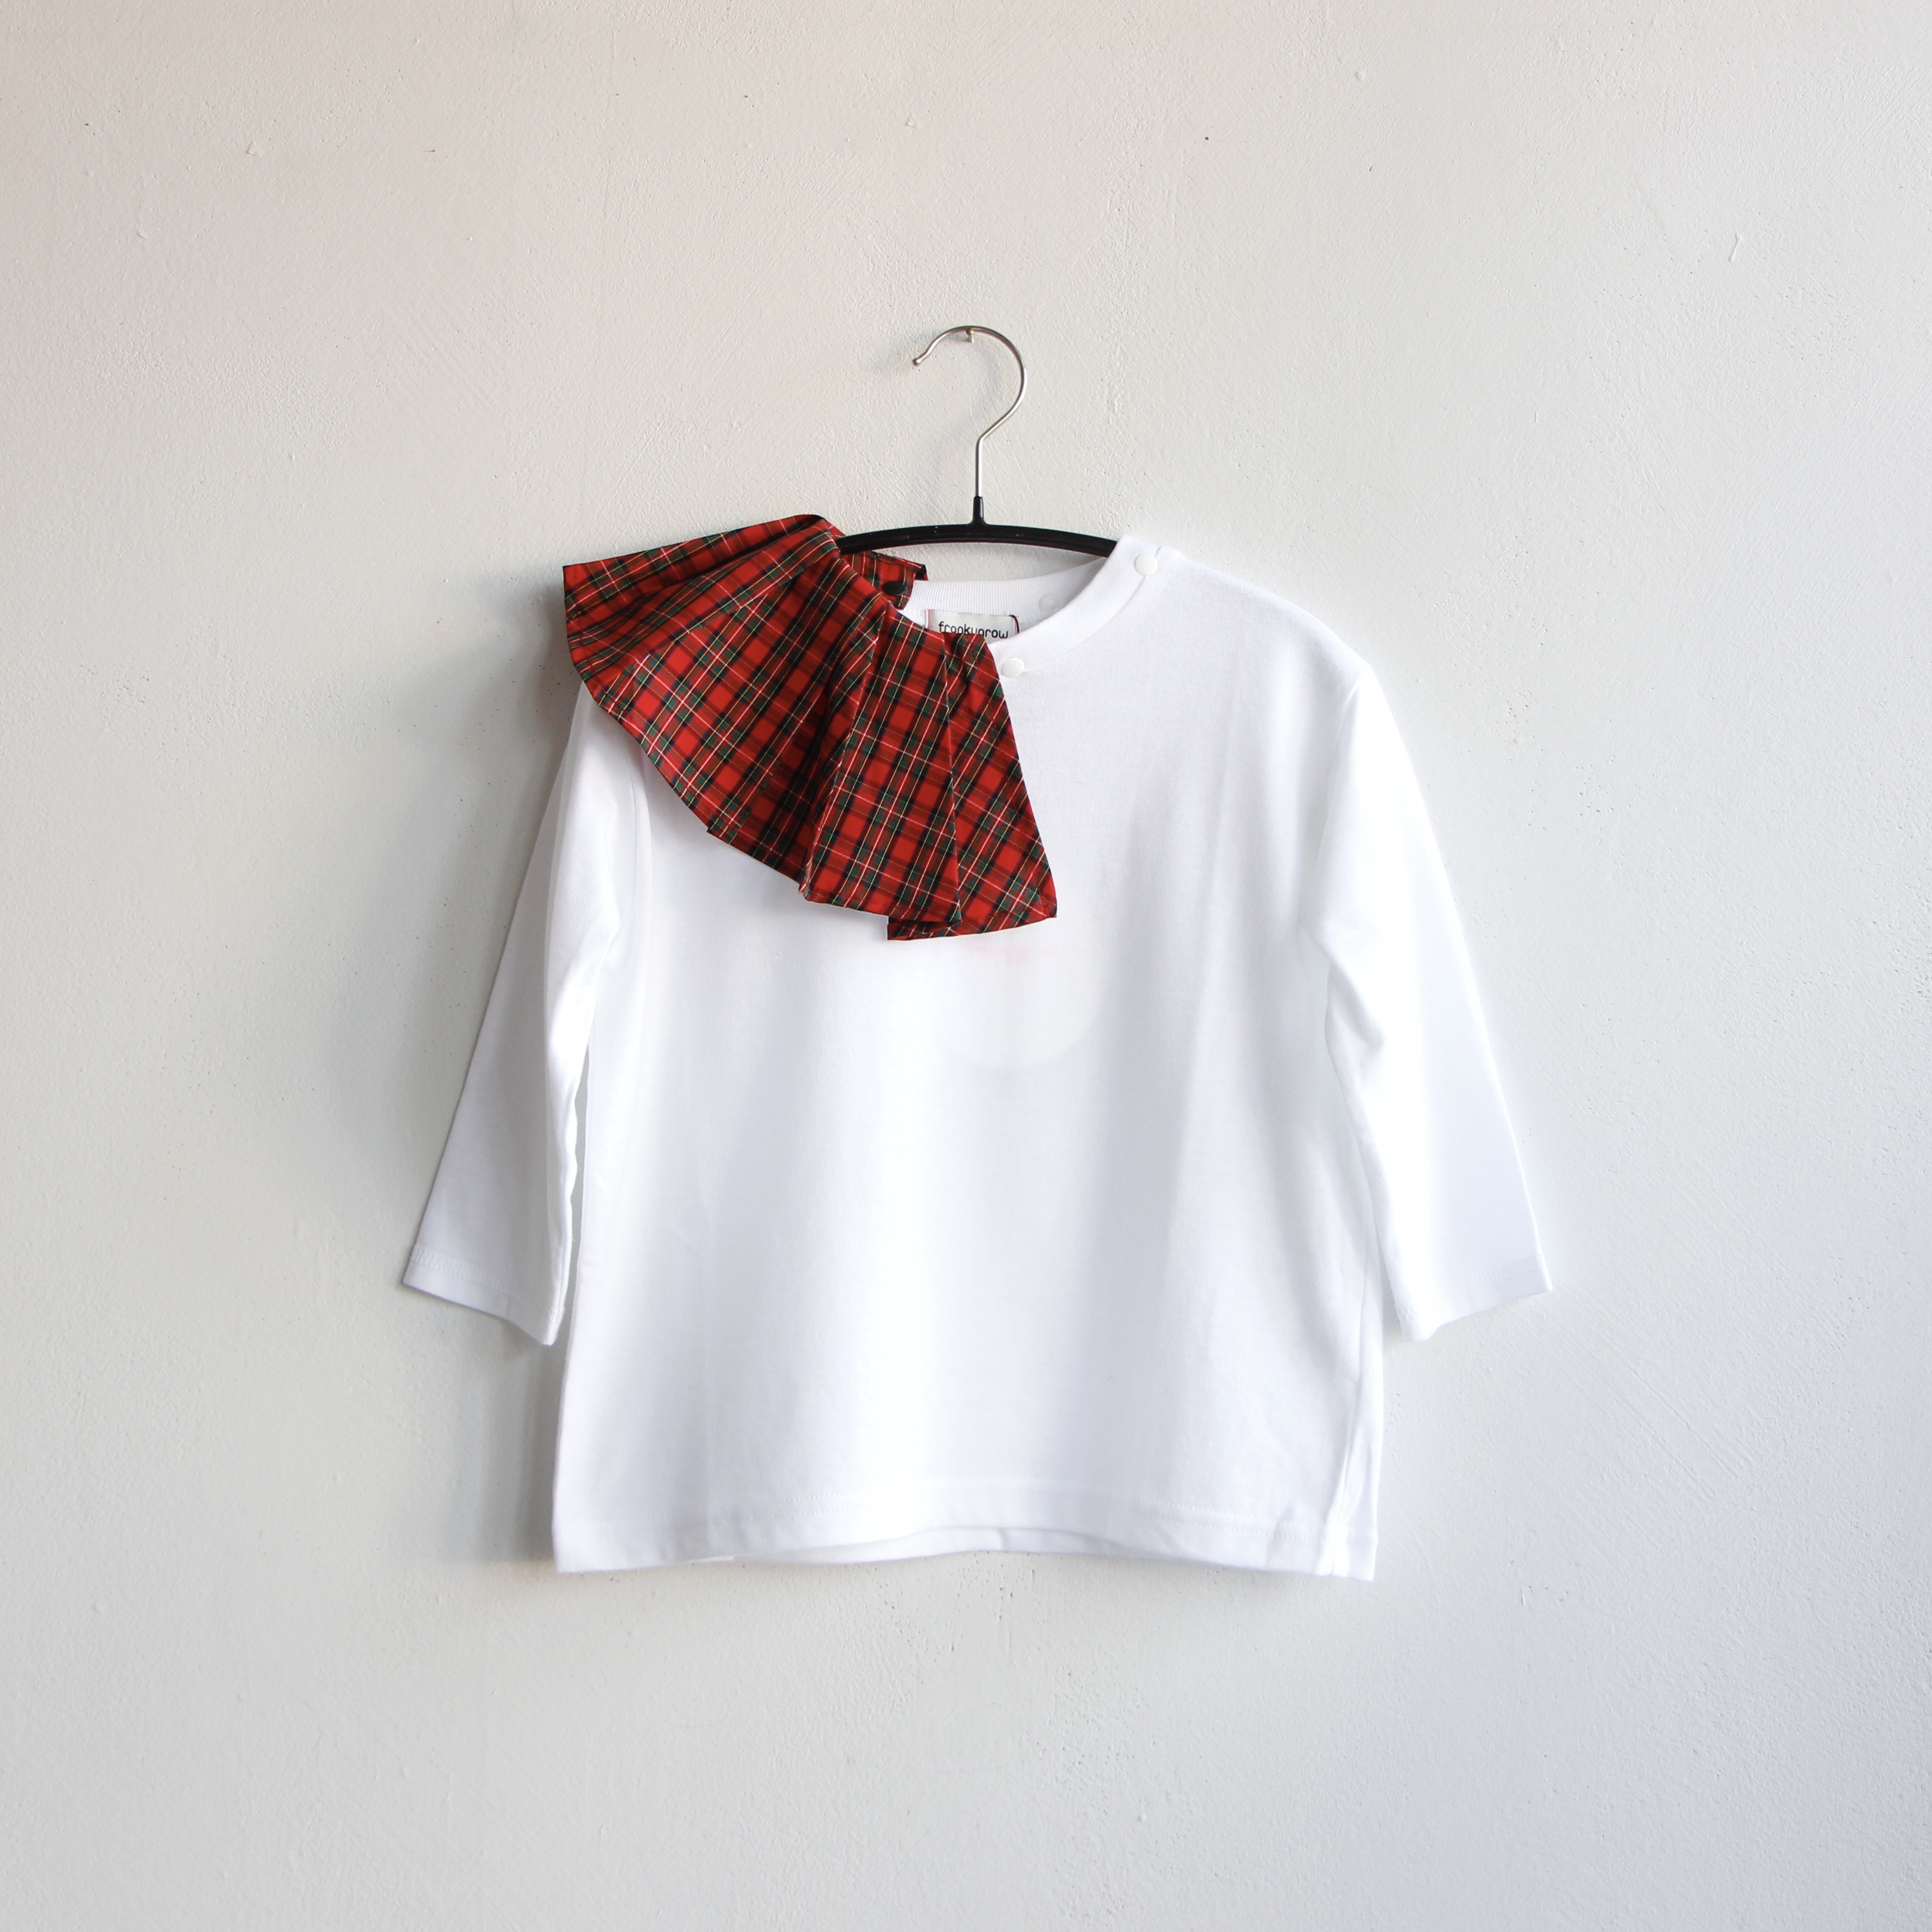 《frankygrow 2020AW》REMOBABLE PLEATS COLLAR LS TEE / red check × white / S・M・L